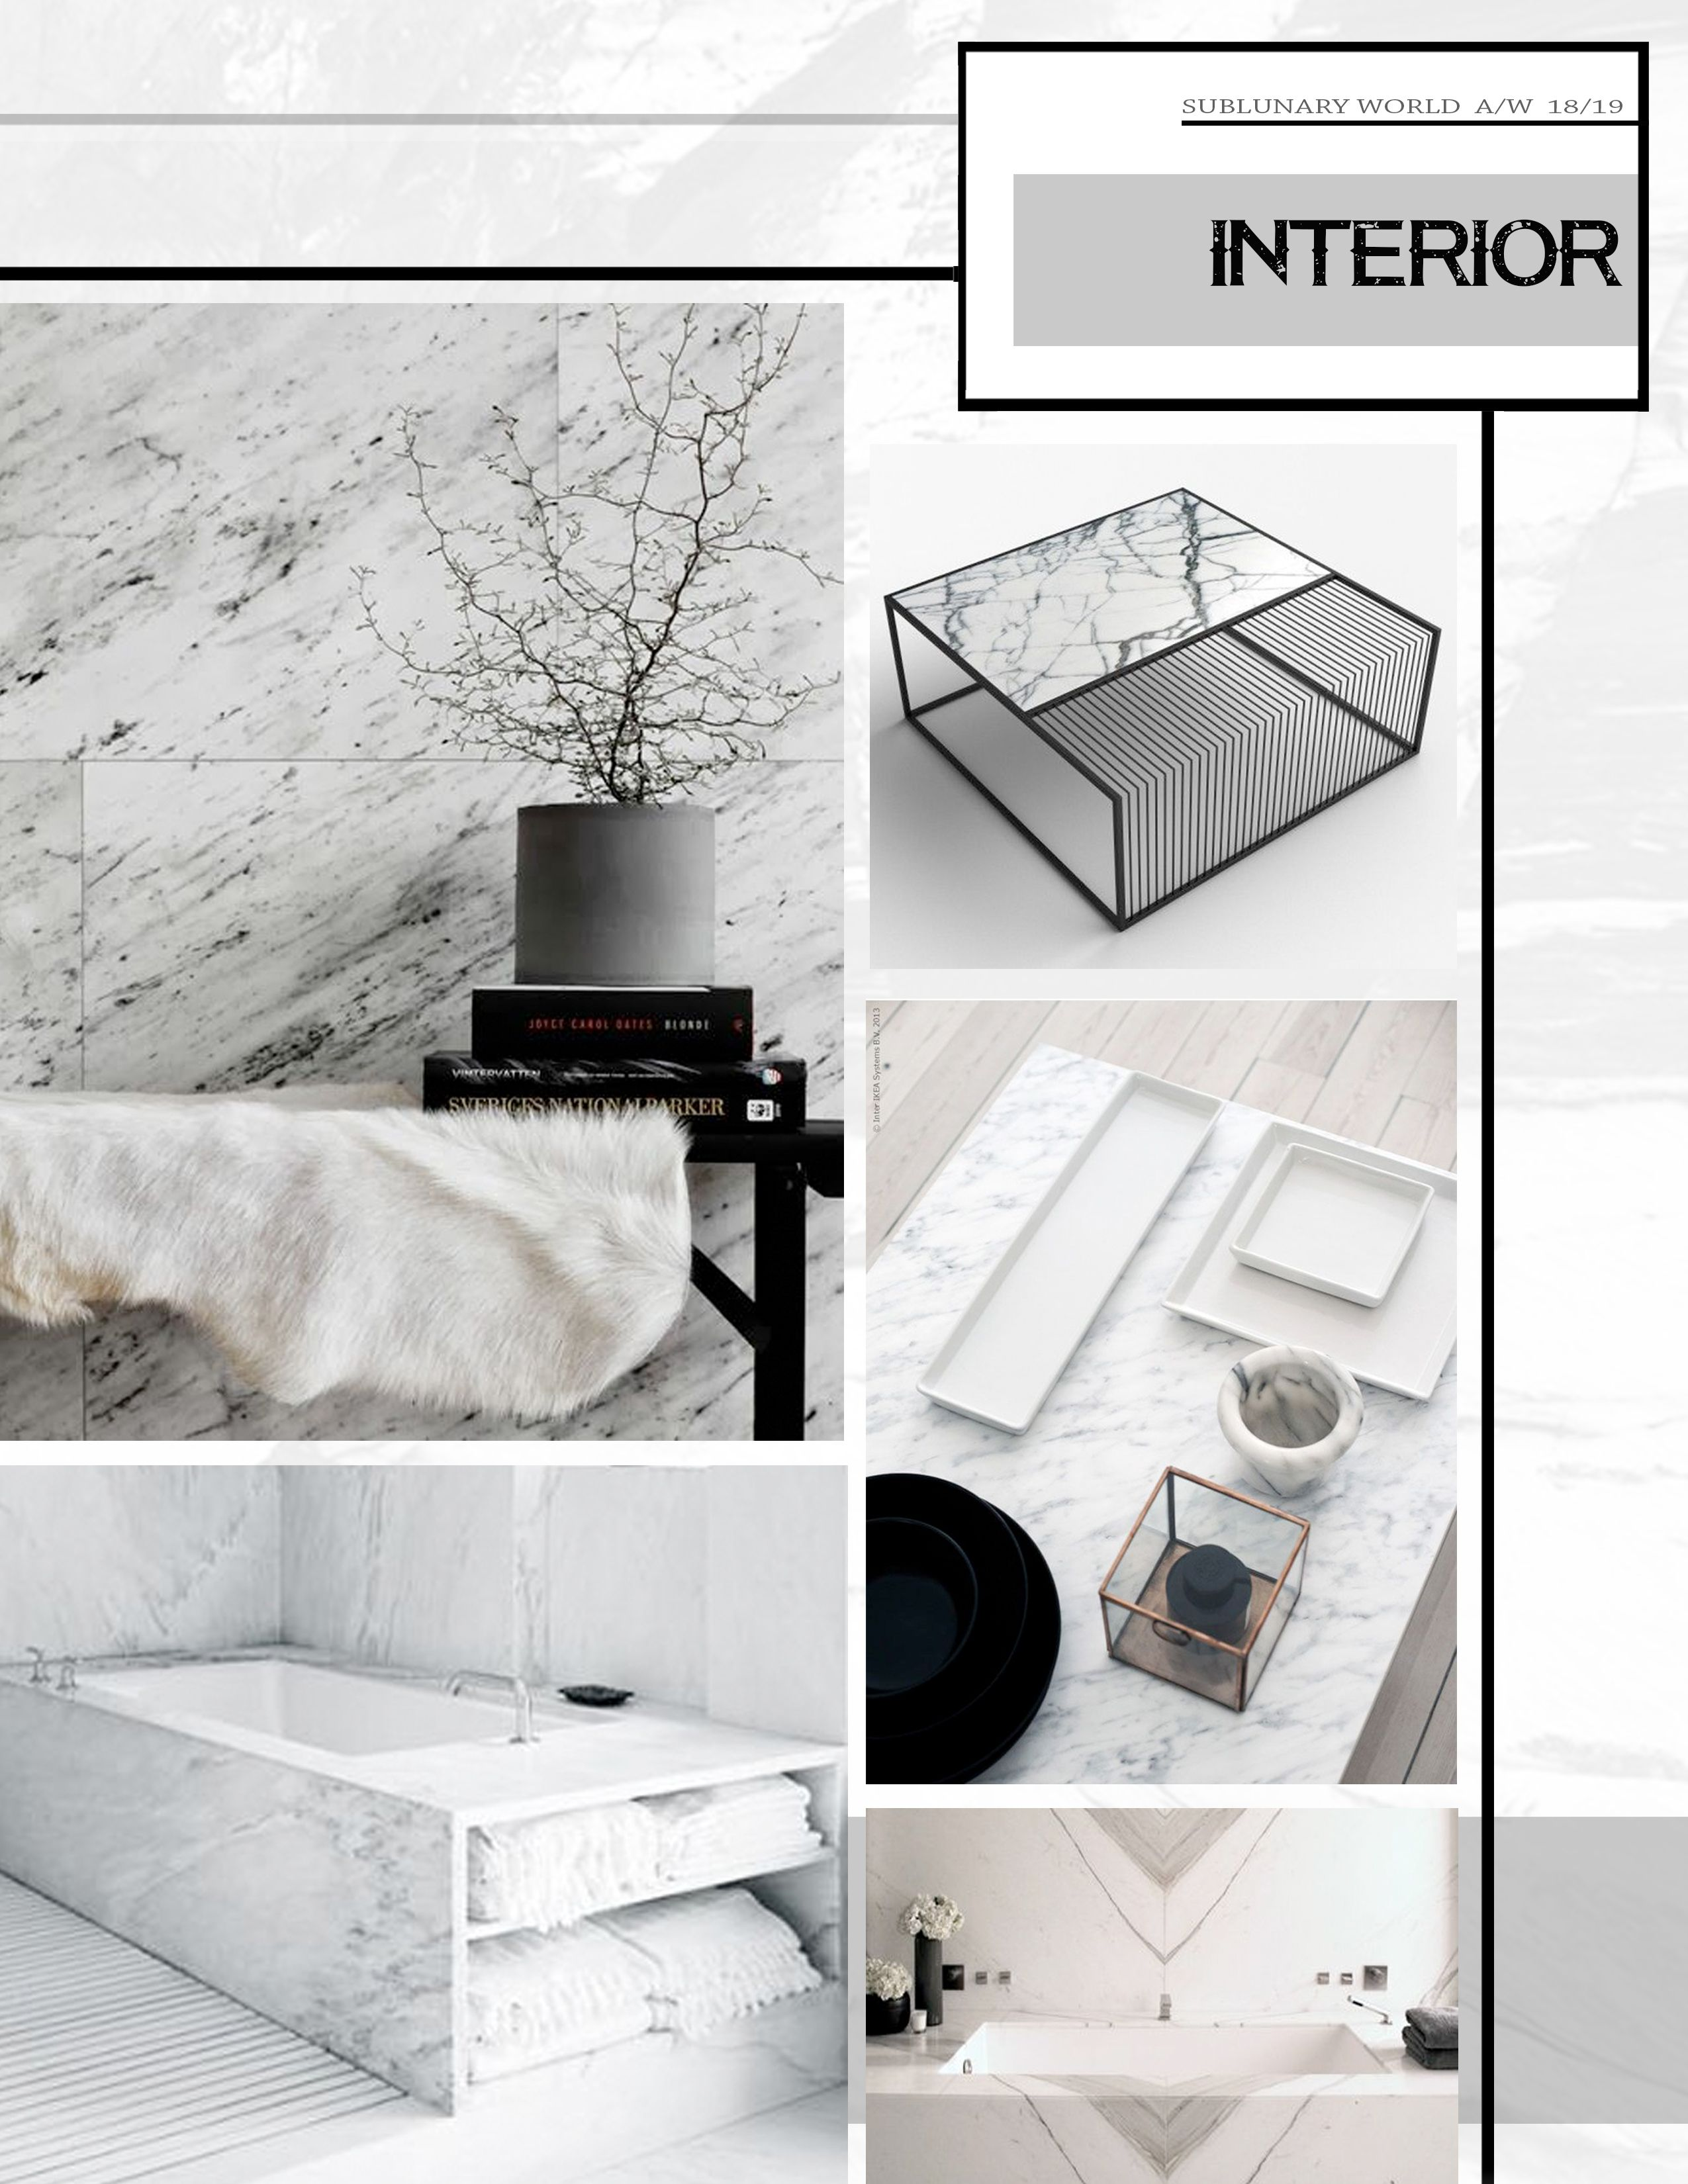 Interior Design Homes Winter 2019: The Trend Book Focuses Of The Trend Forecasting For Autumn Winter 2018 / 2019